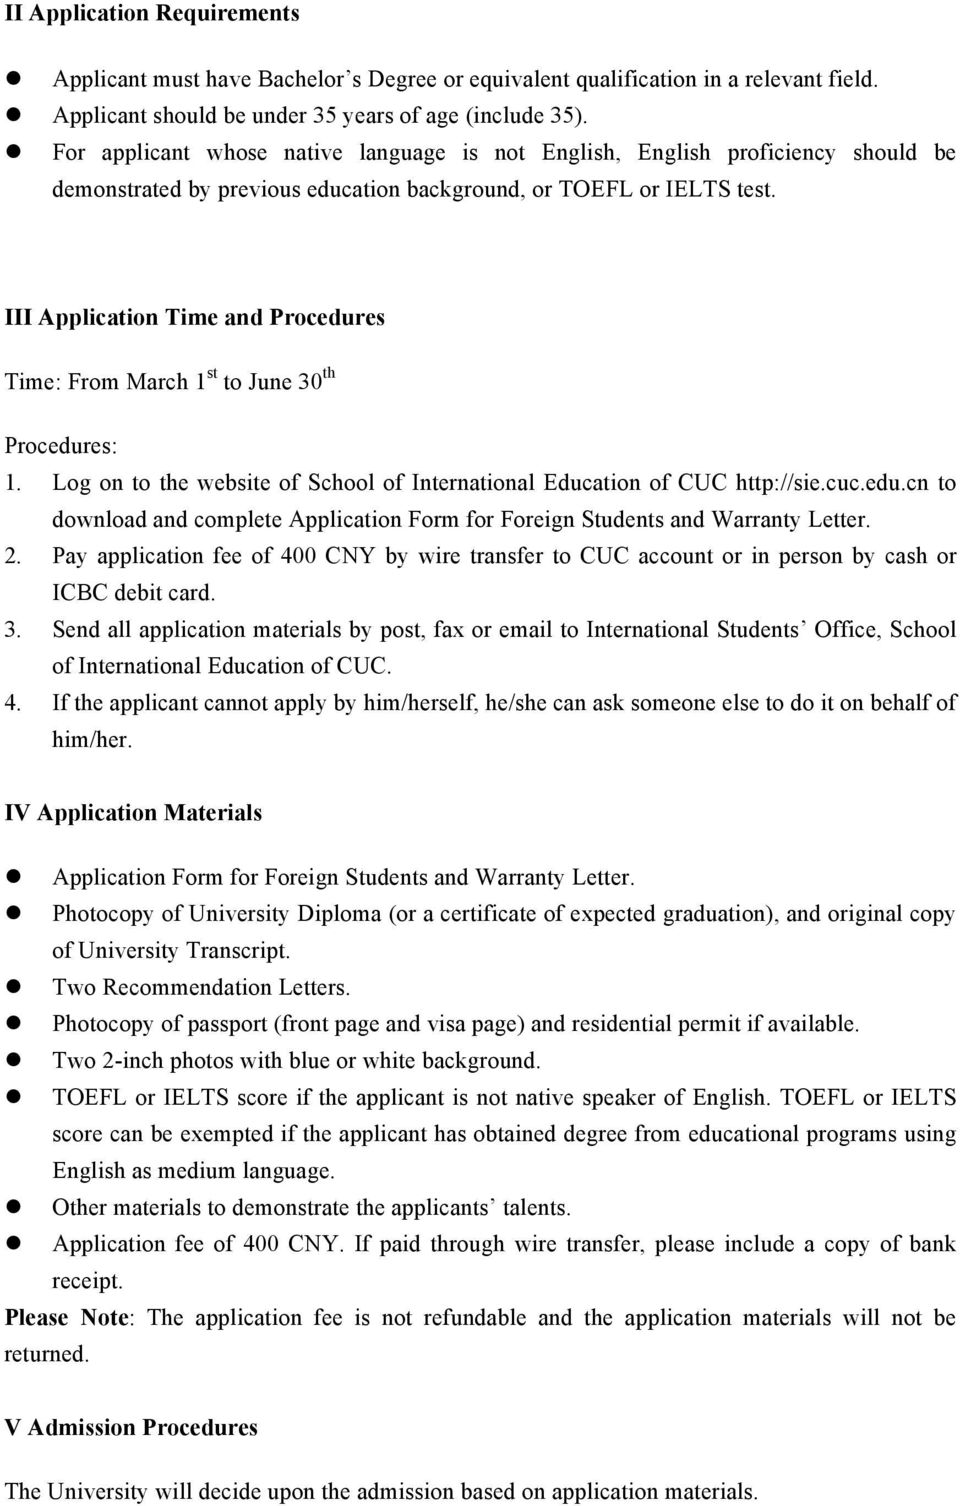 III Application Time and Procedures Time: From March 1 st to June 30 th Procedures: 1. Log on to the website of School of International Education of CUC http://sie.cuc.edu.cn to download and complete Application Form for Foreign Students and Warranty Letter.